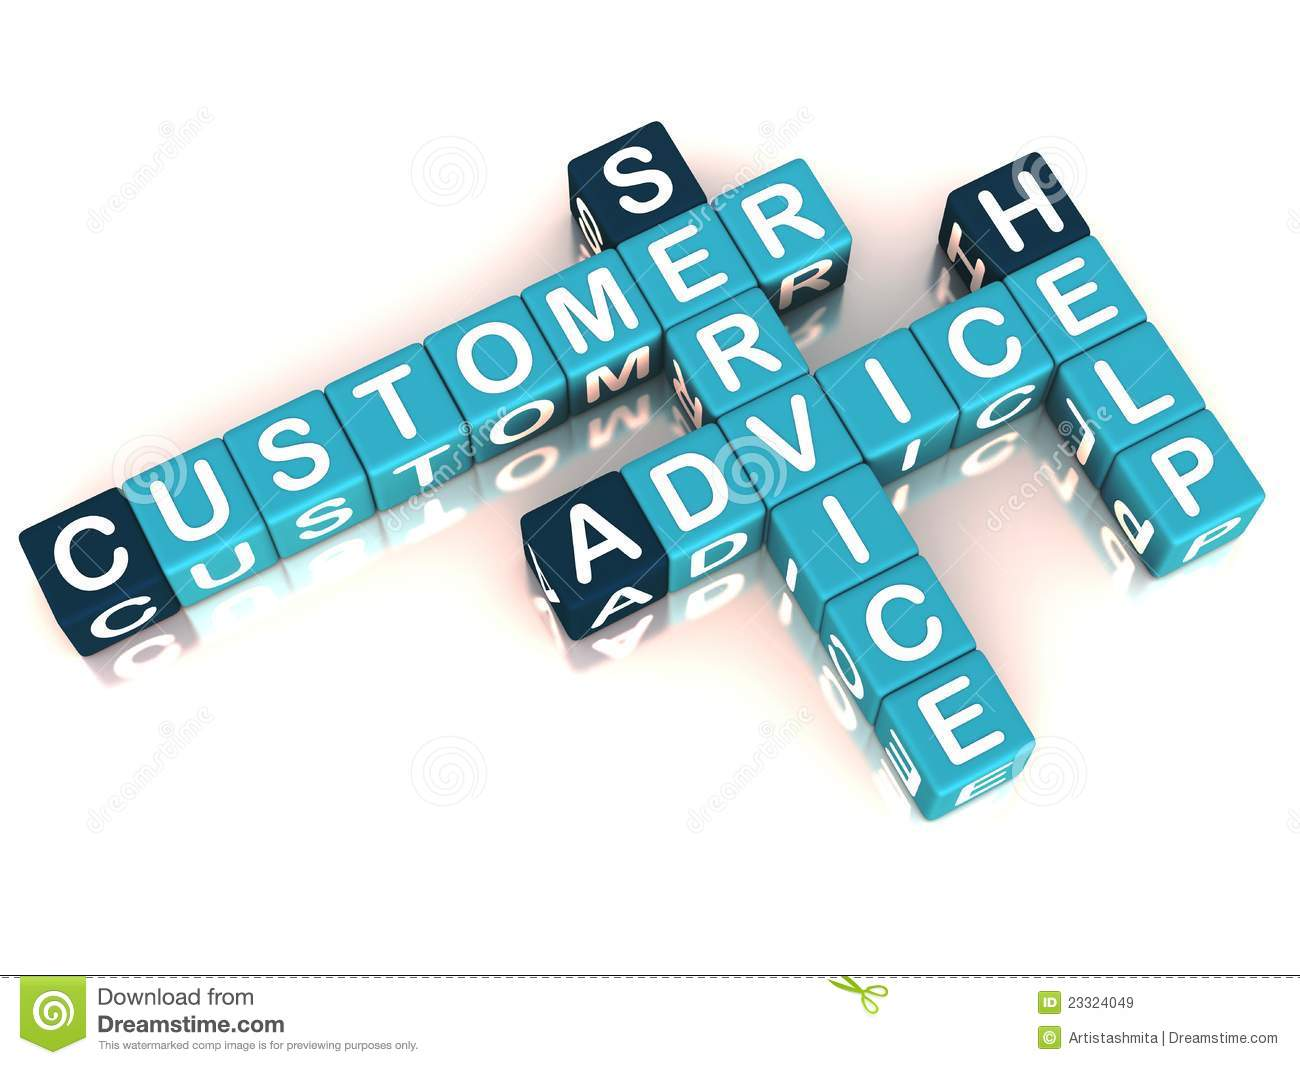 Customer care clipart 2 » Clipart Station.